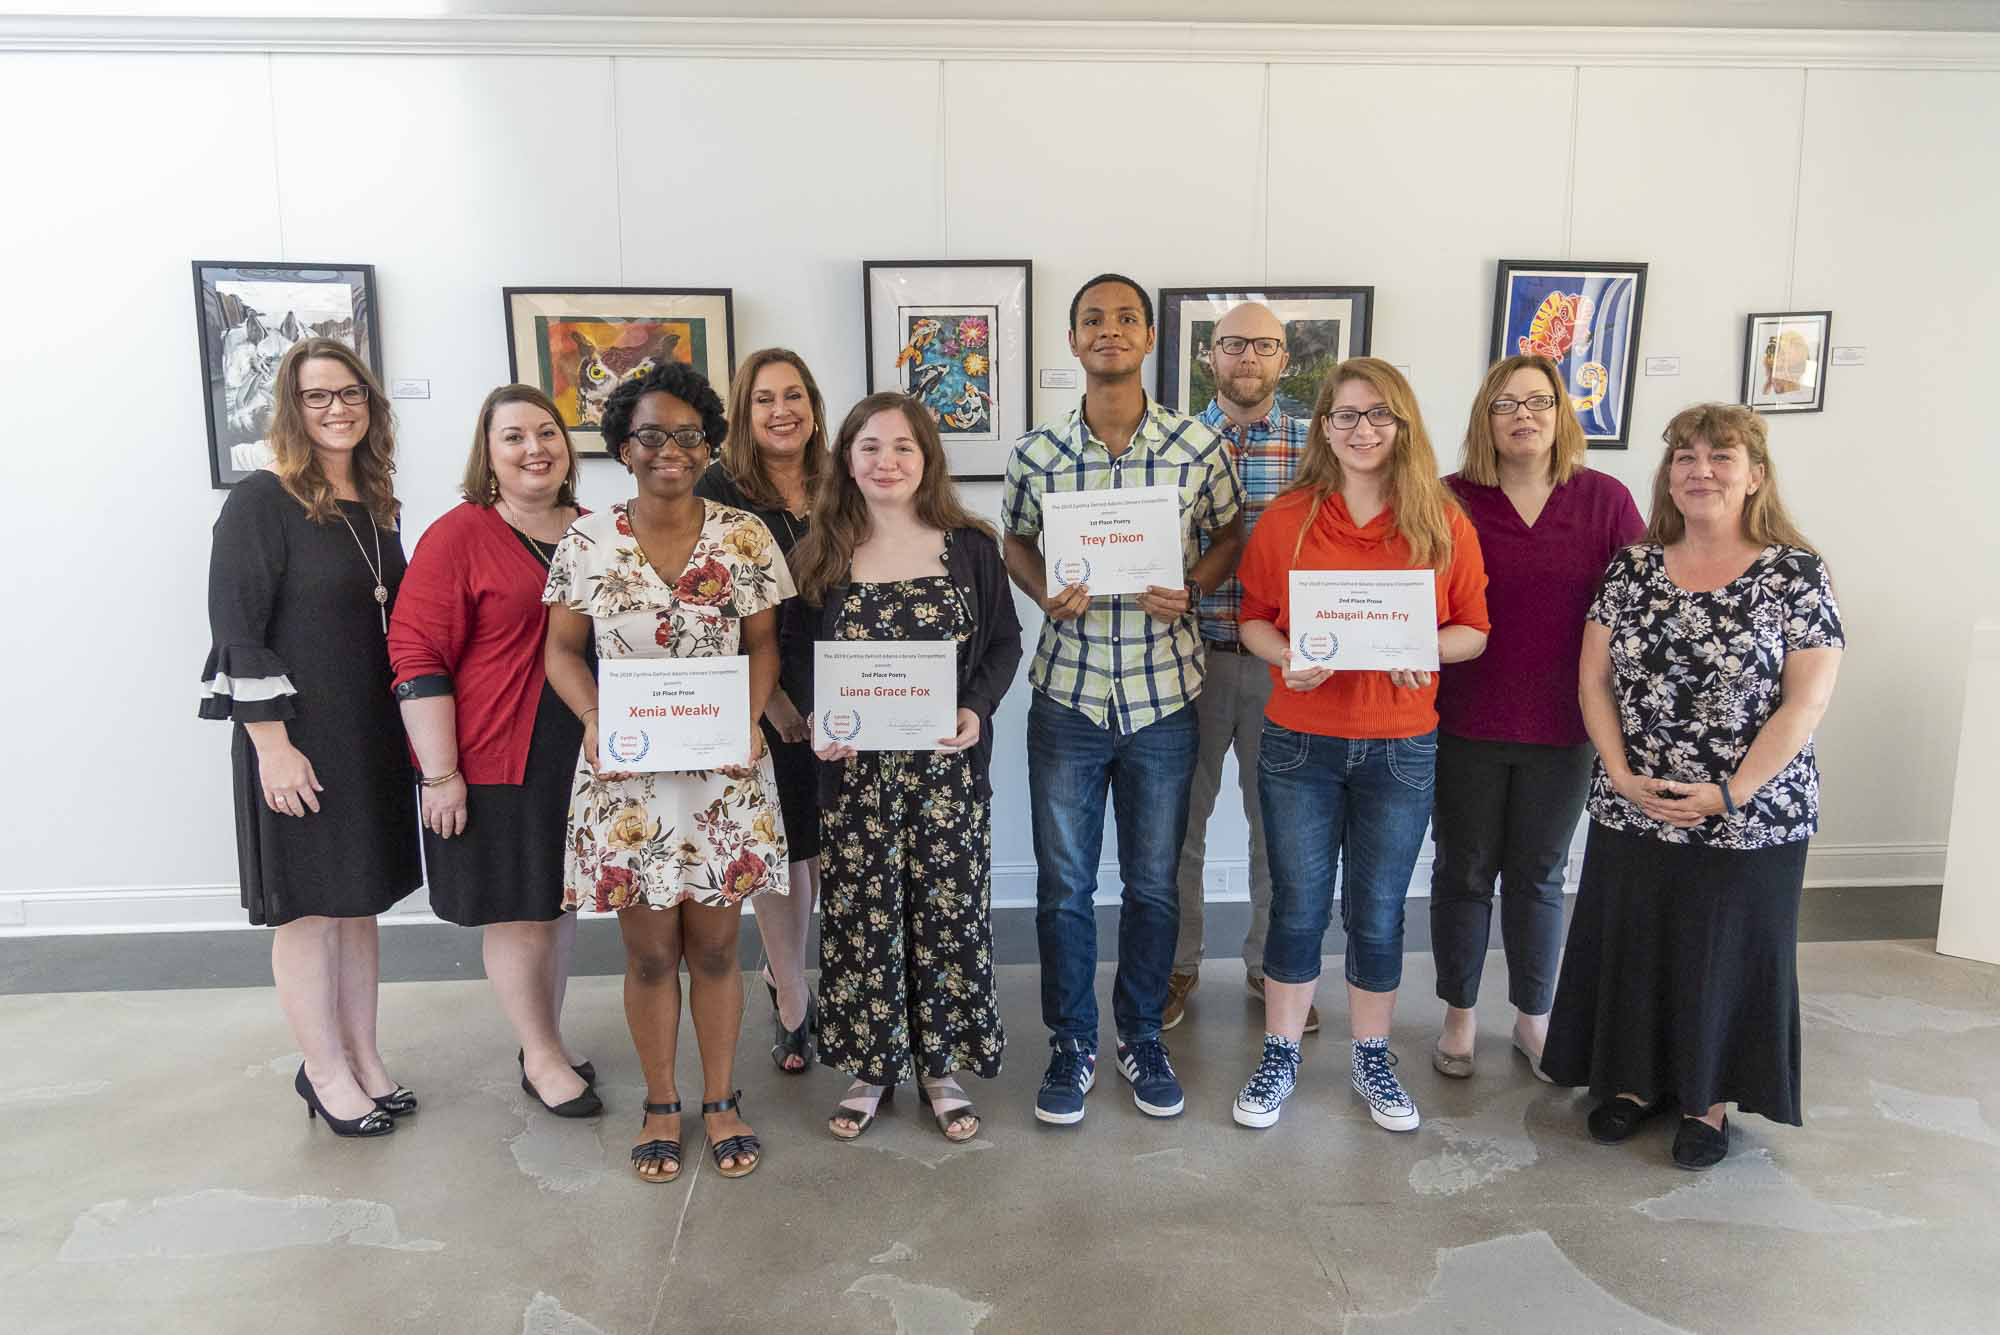 Members of the JCC English faculty are pictured with student winners from left Xenia Weakley; Liana Grace Fox; Trey Dixon; and Abbagail Ann Fry.